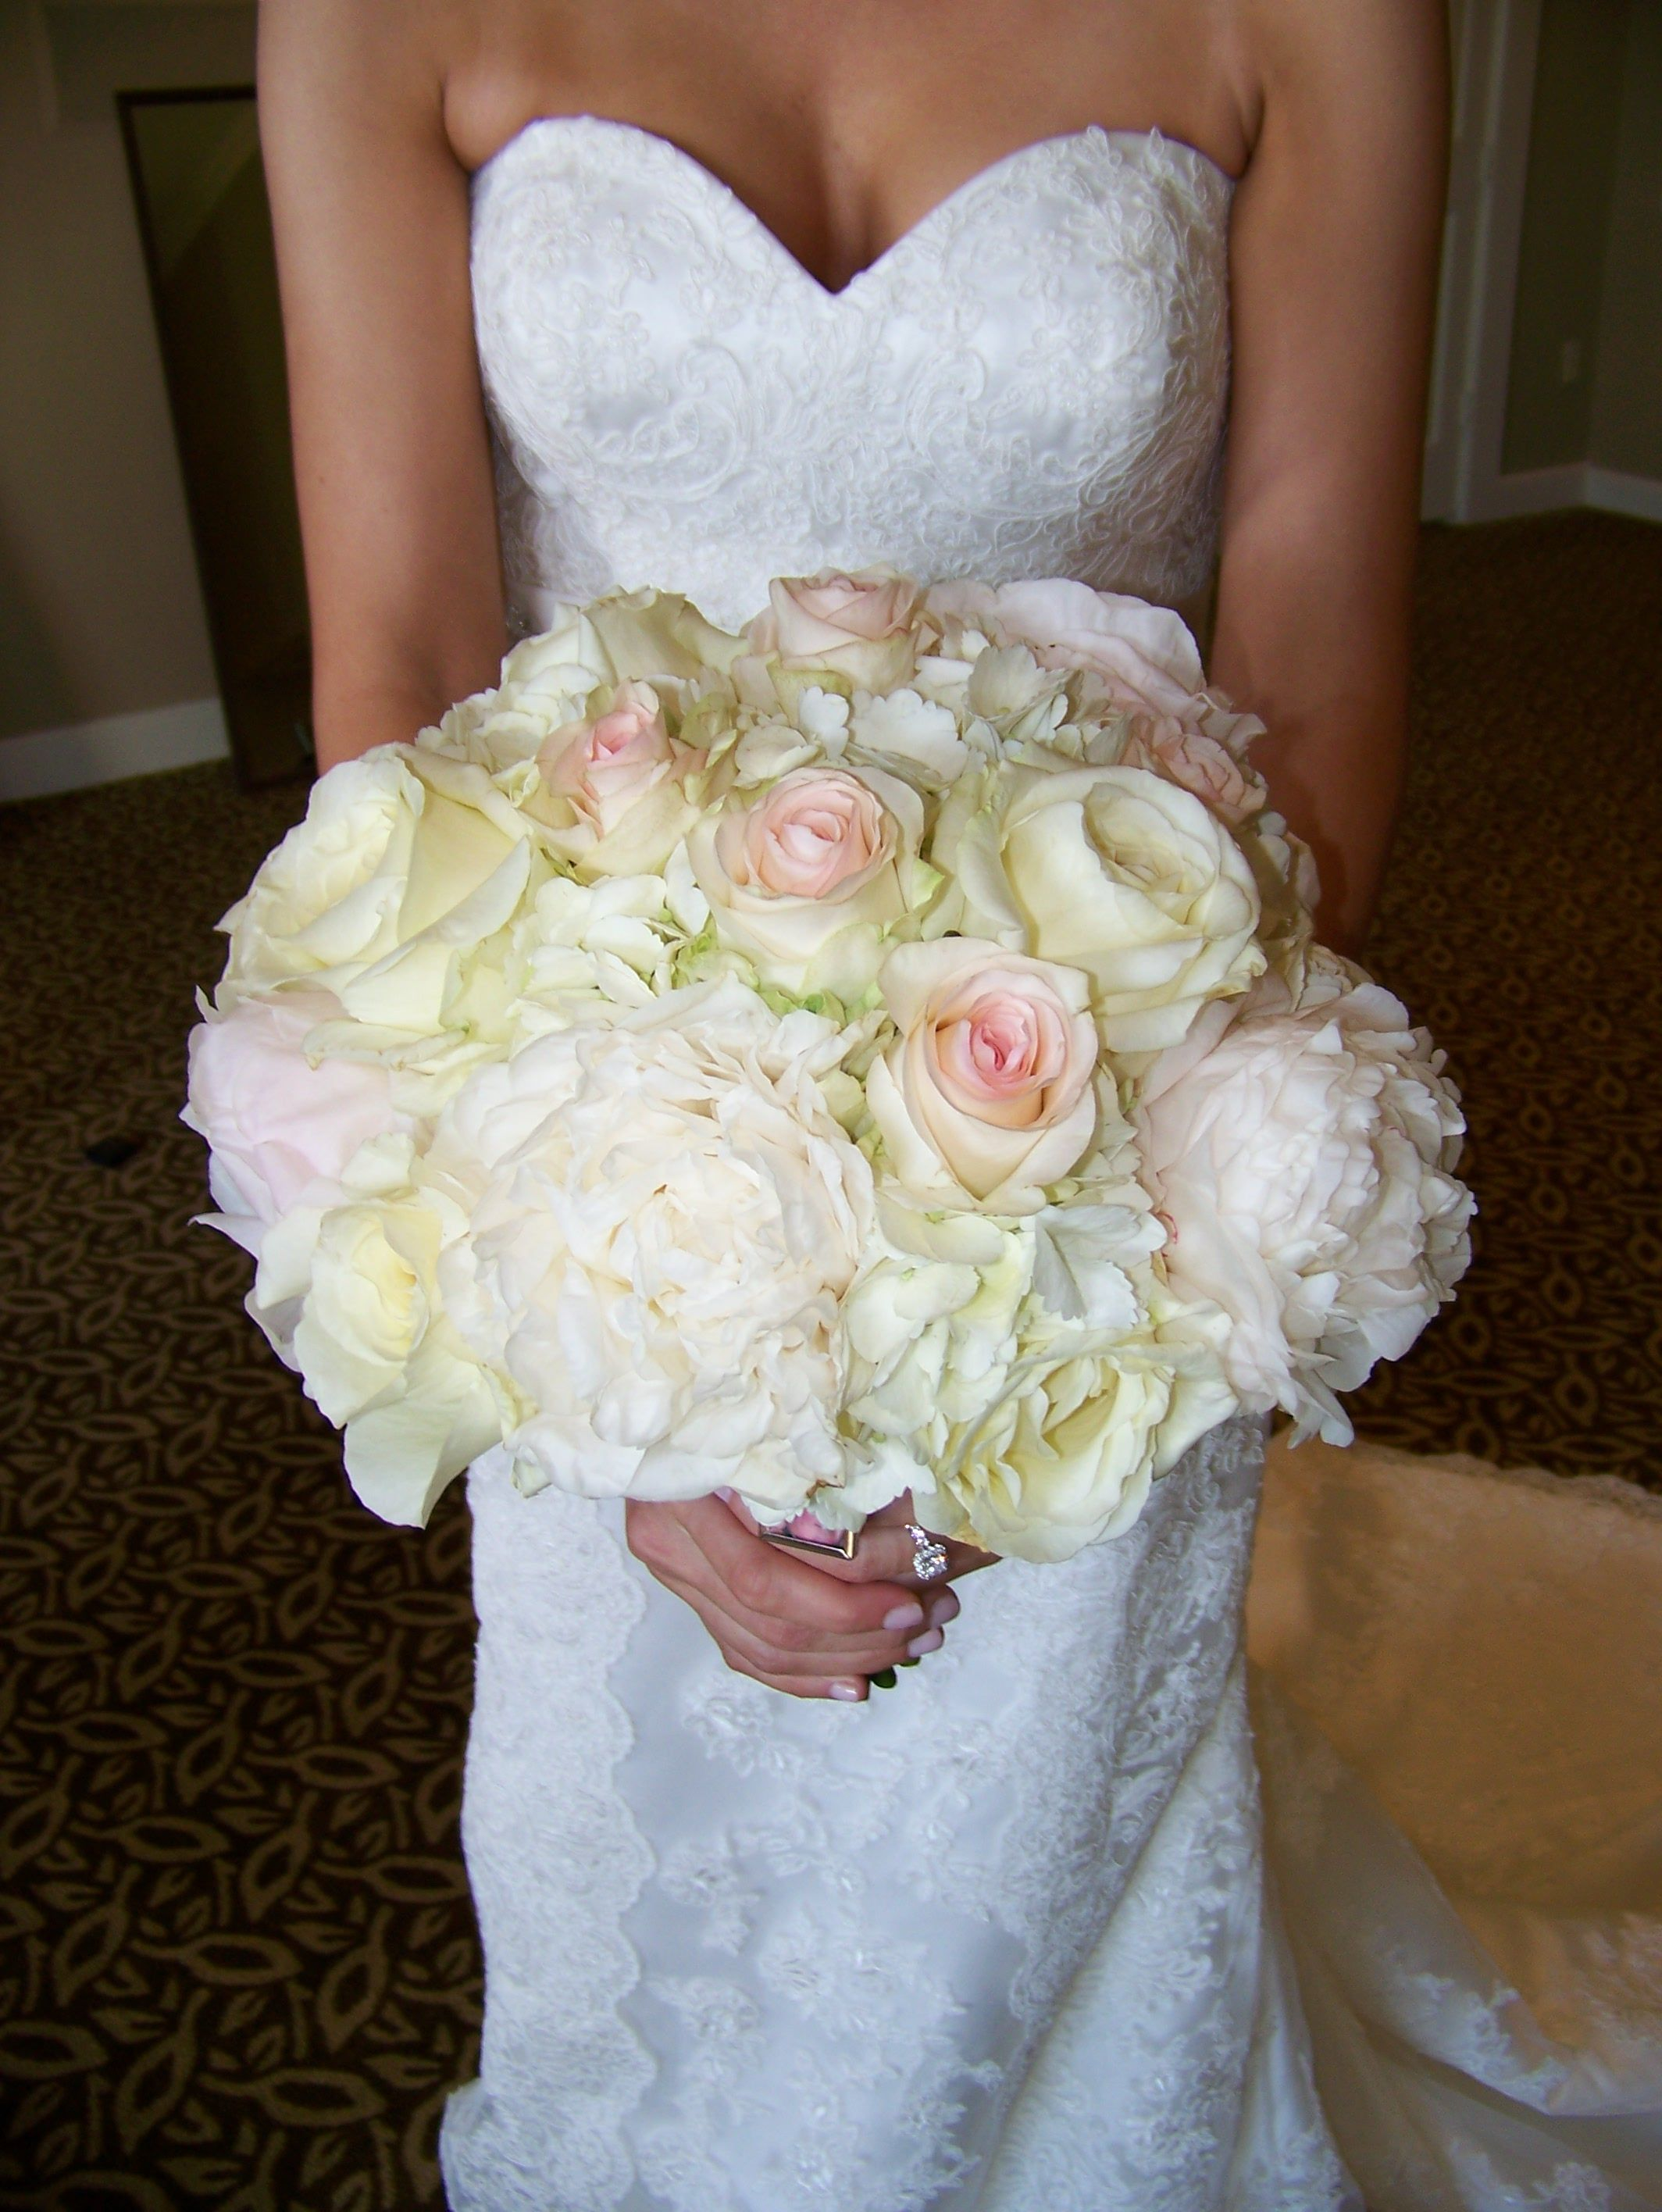 bridal bouquet of hydrangea, peonies, and garden roses.  lush, beautiful and smelled wonderful